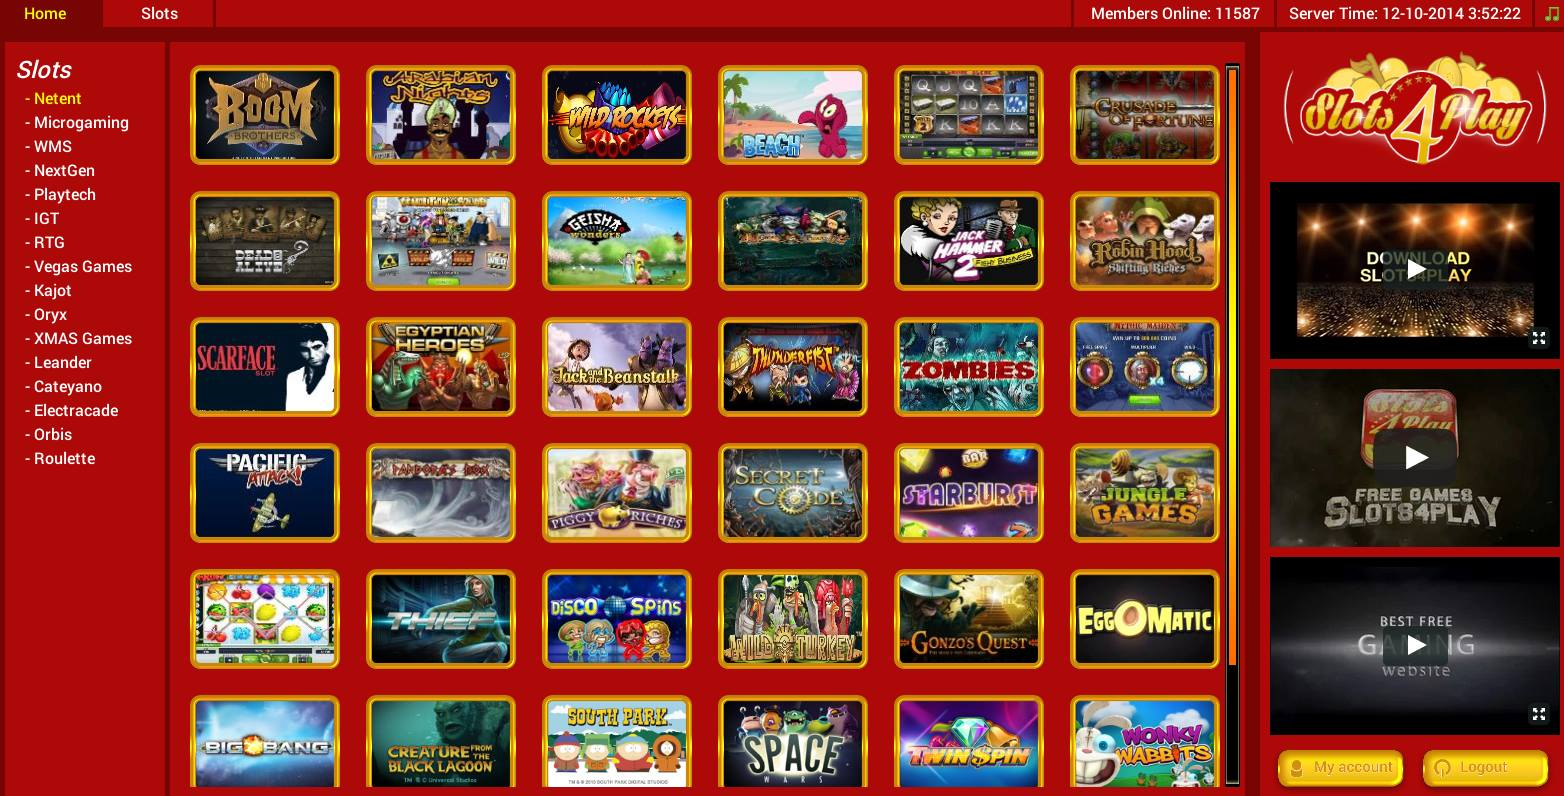 free gamble slots games